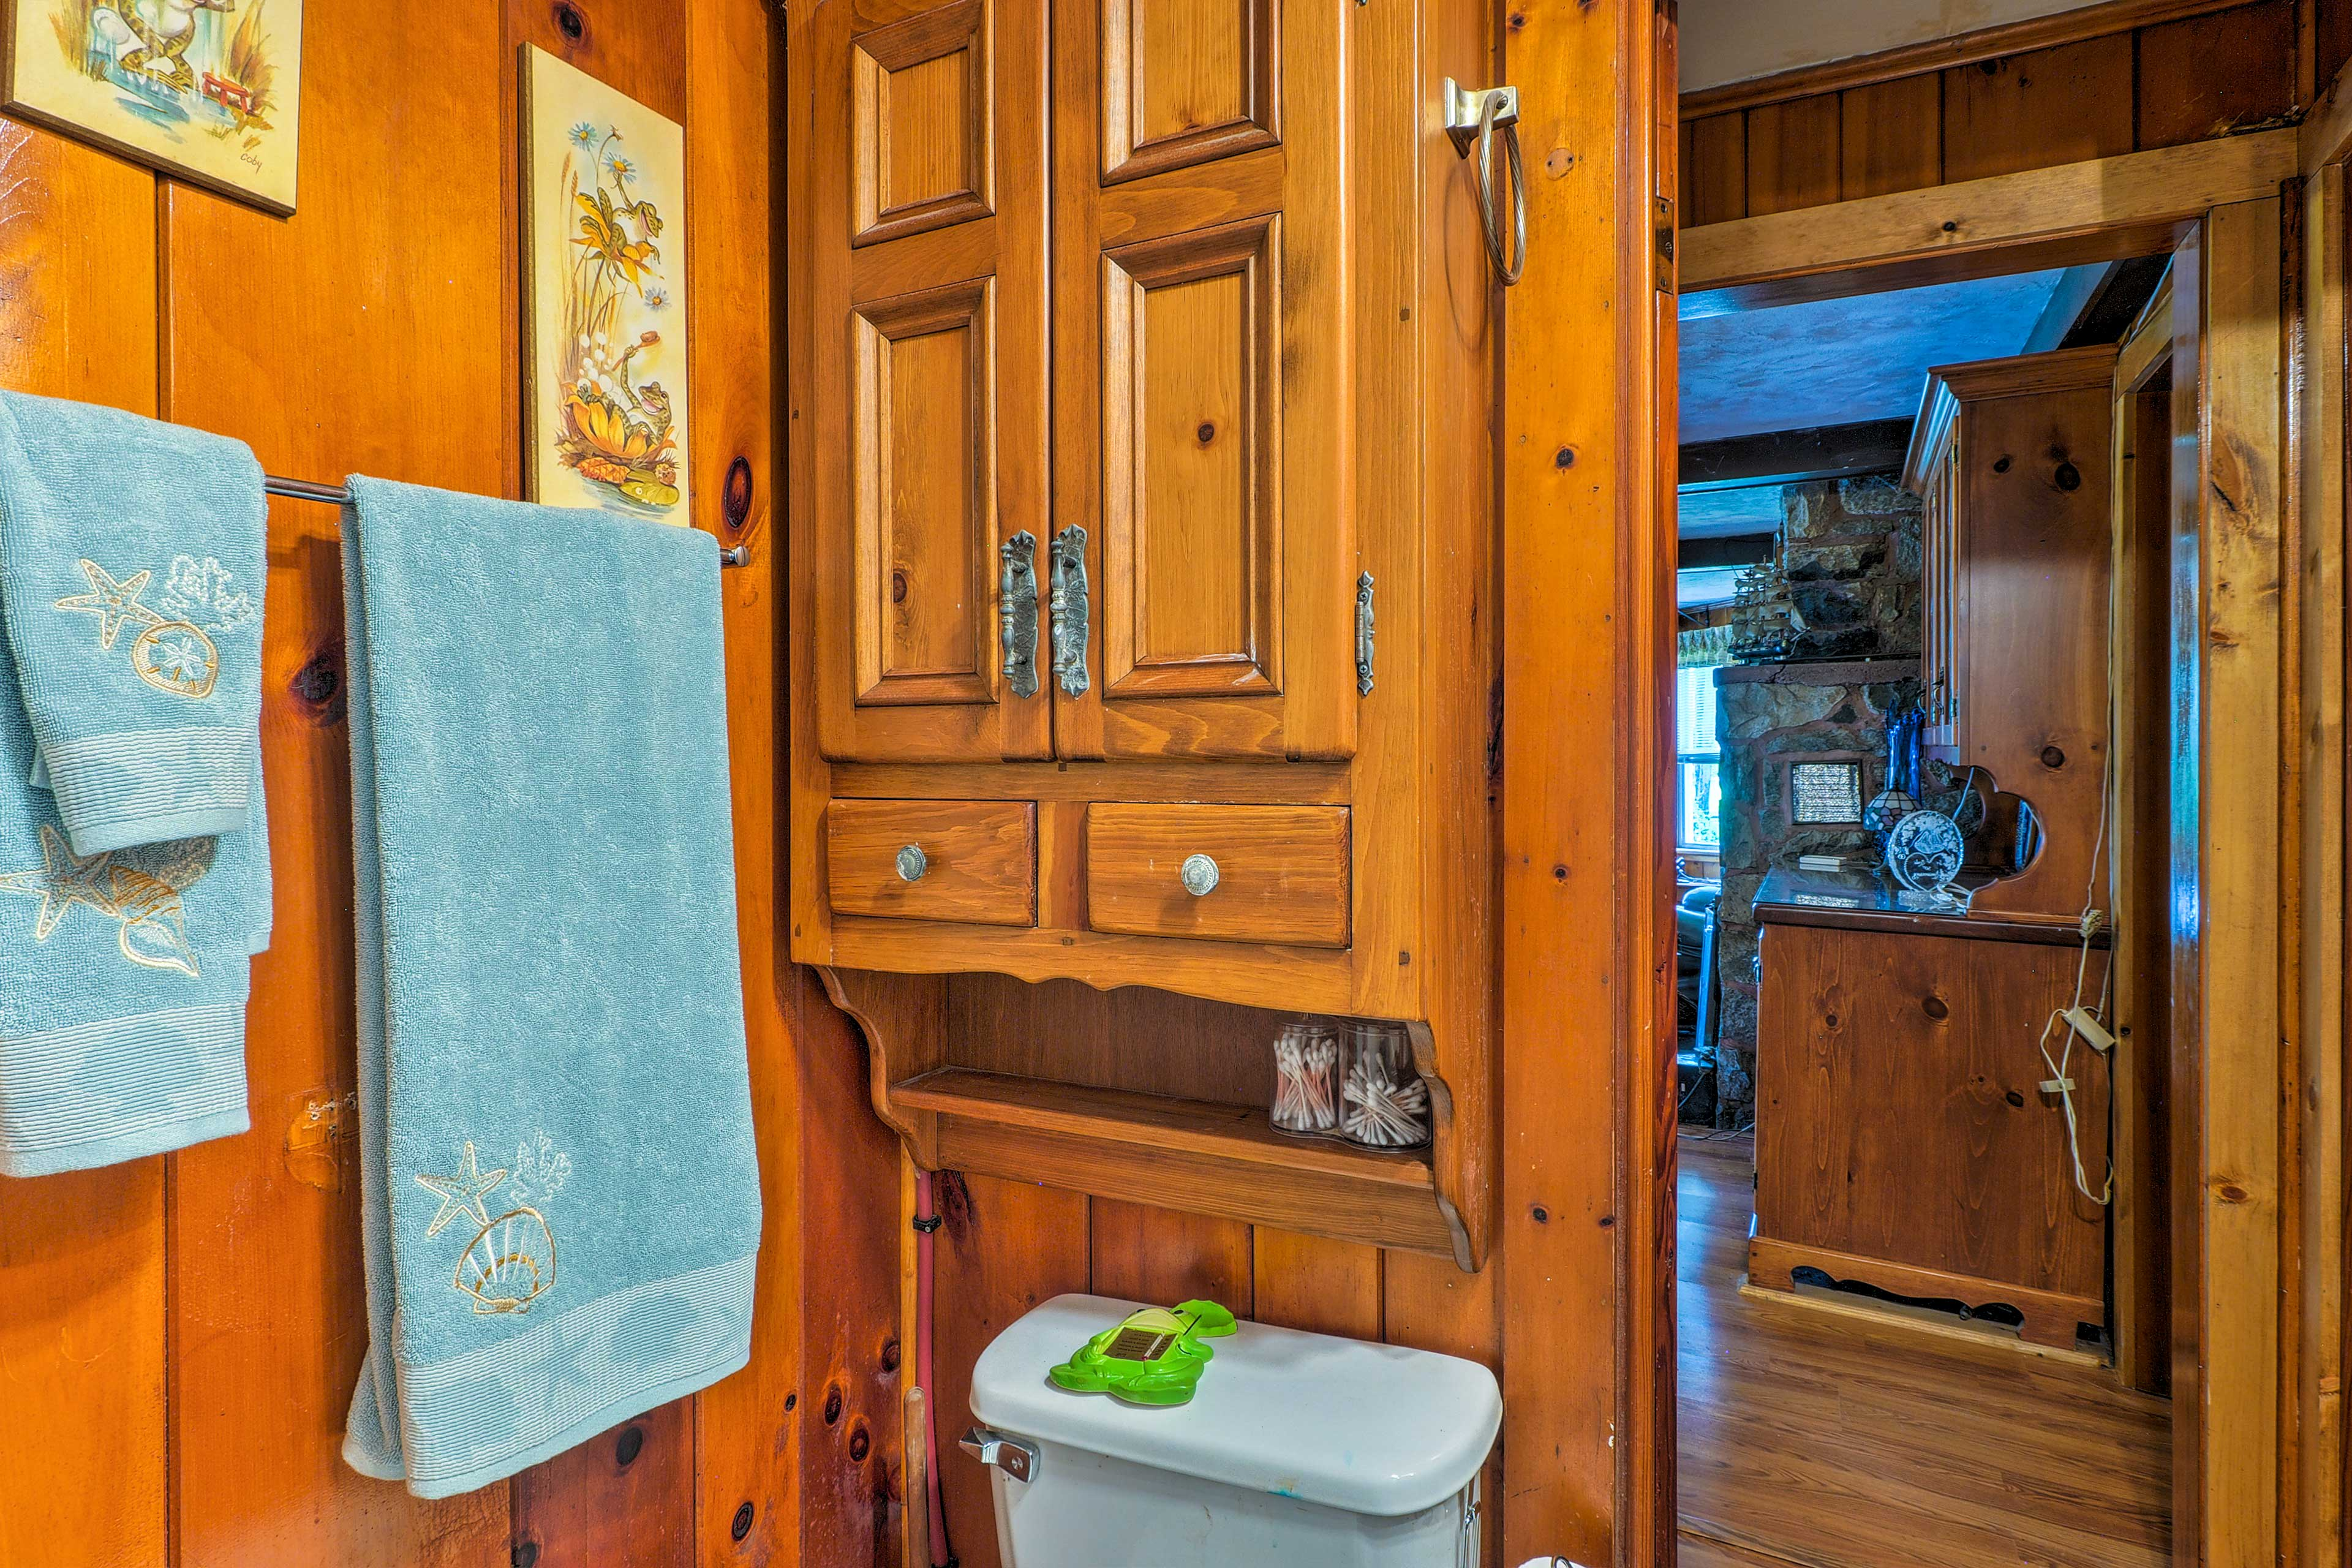 Unpack your toiletries for easy access during your stay.